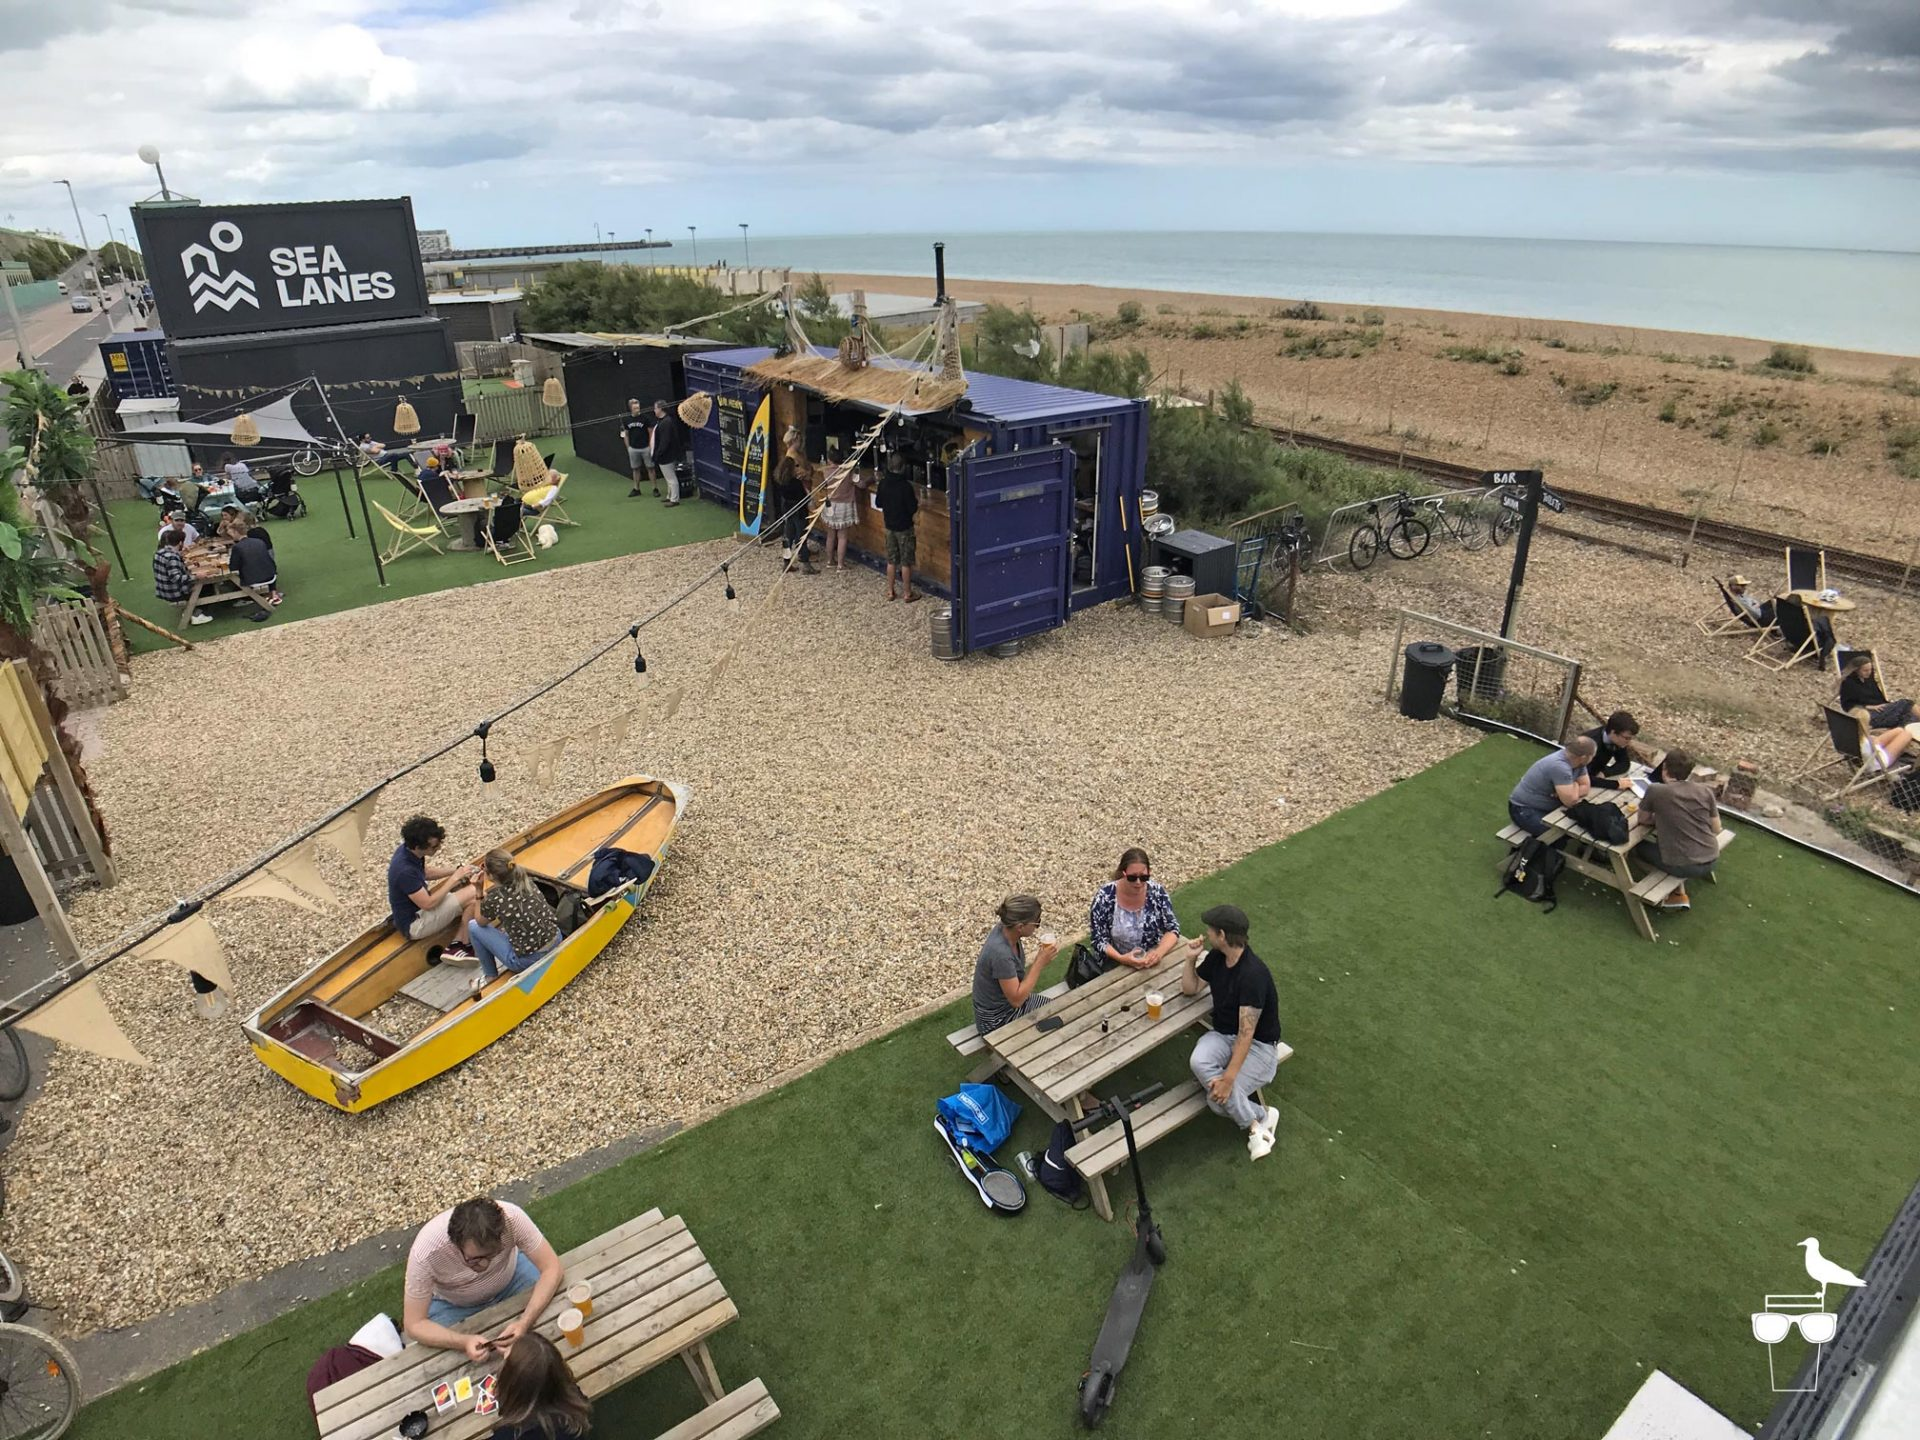 bison-beach-bar-brighton-view-from-above